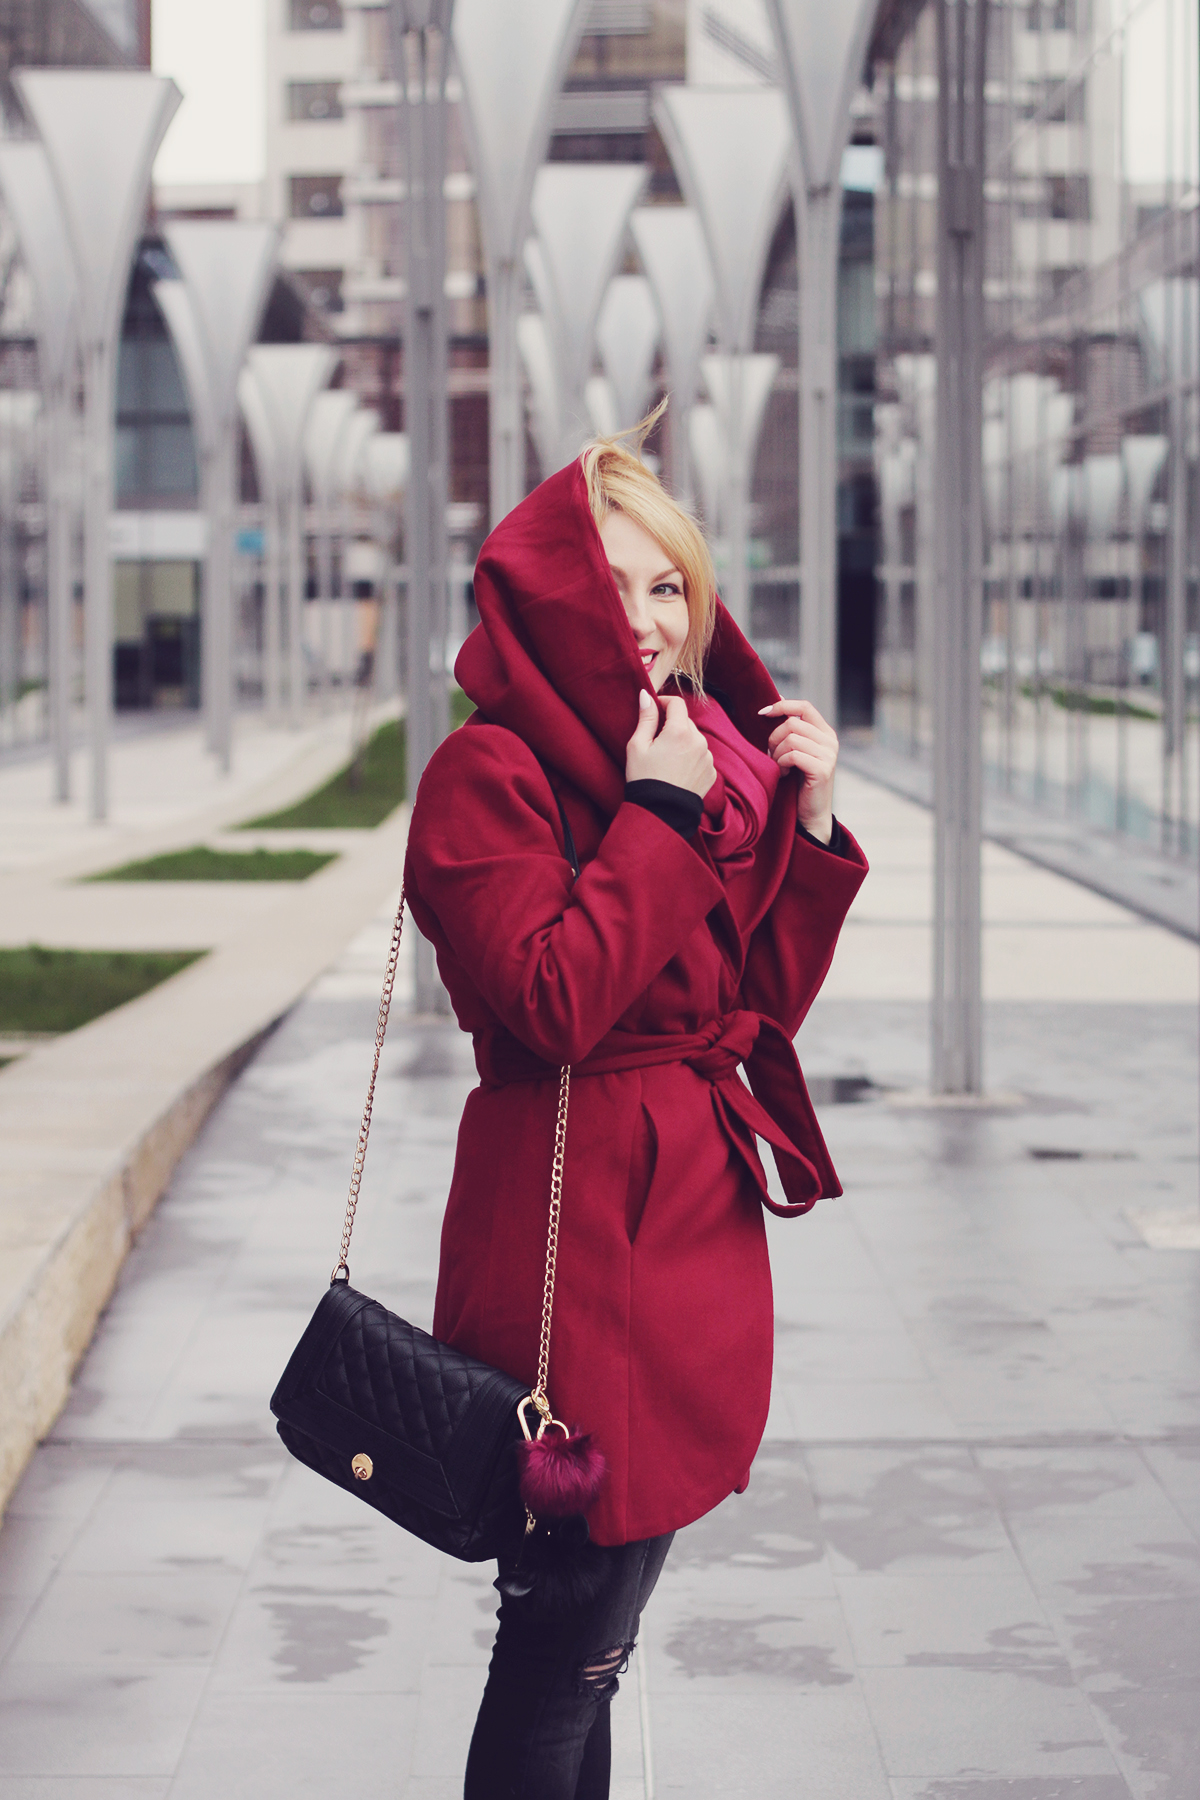 burgundy coat and black chain clutch with pom-poms